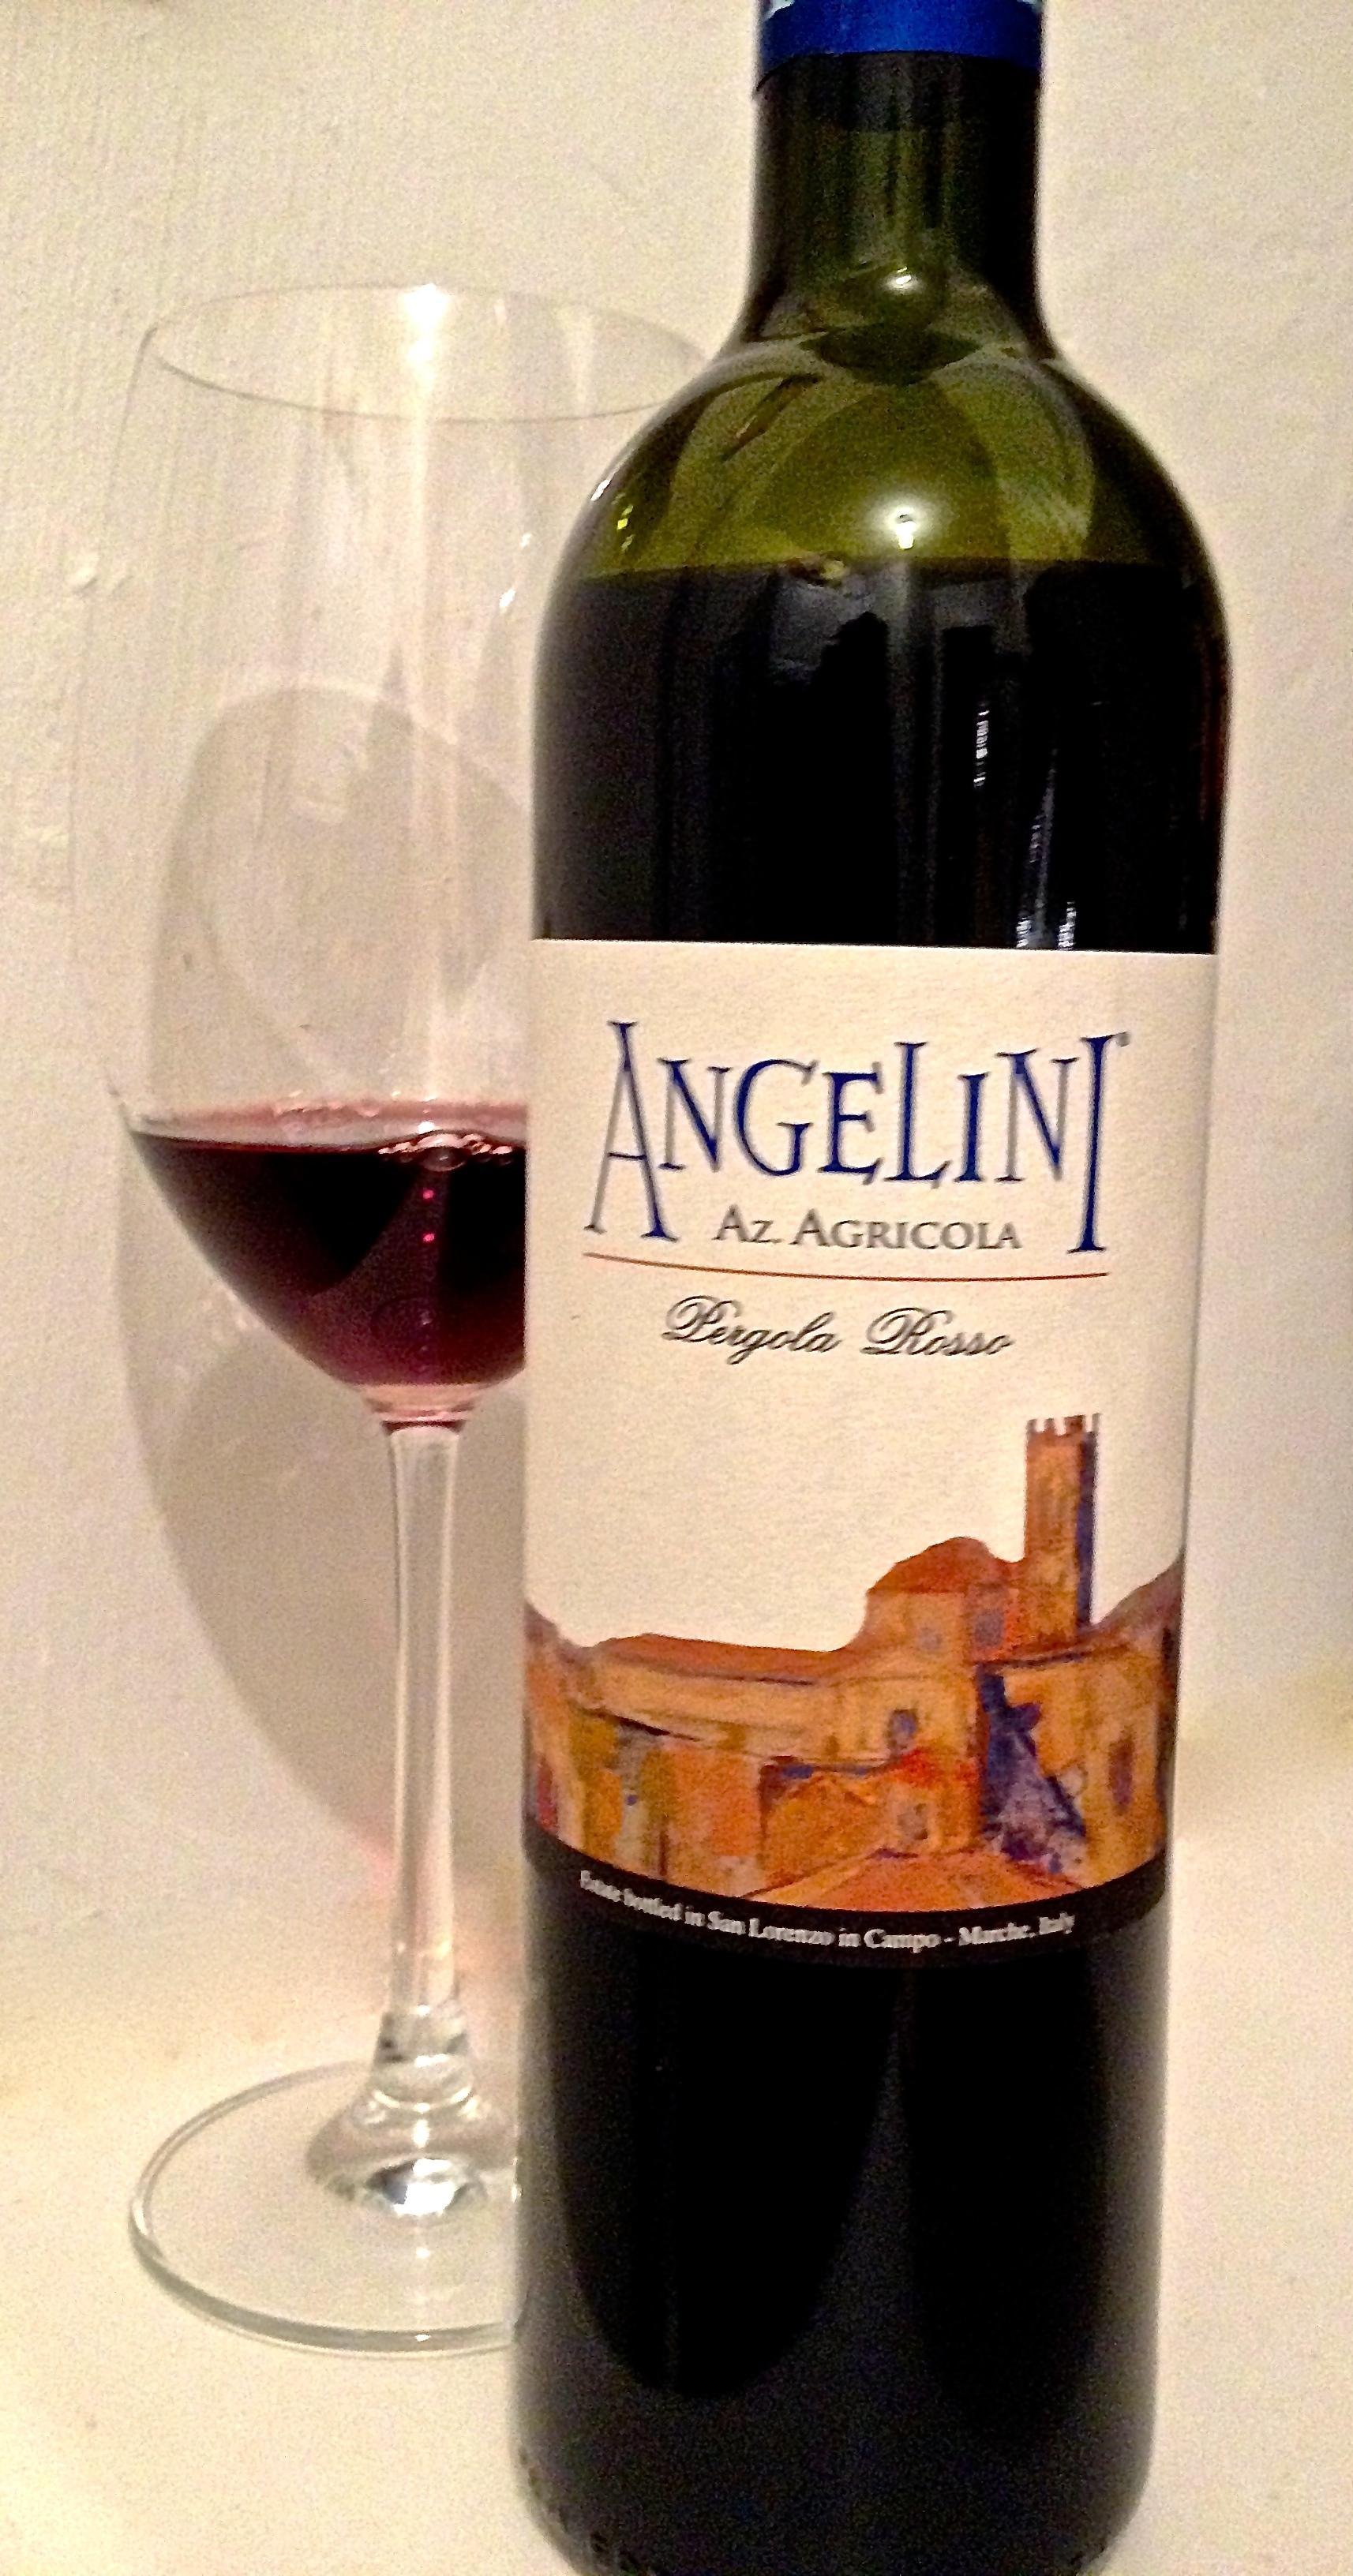 Interesting Wines of Italy: 2012 Angelini Pergola Rosso 2